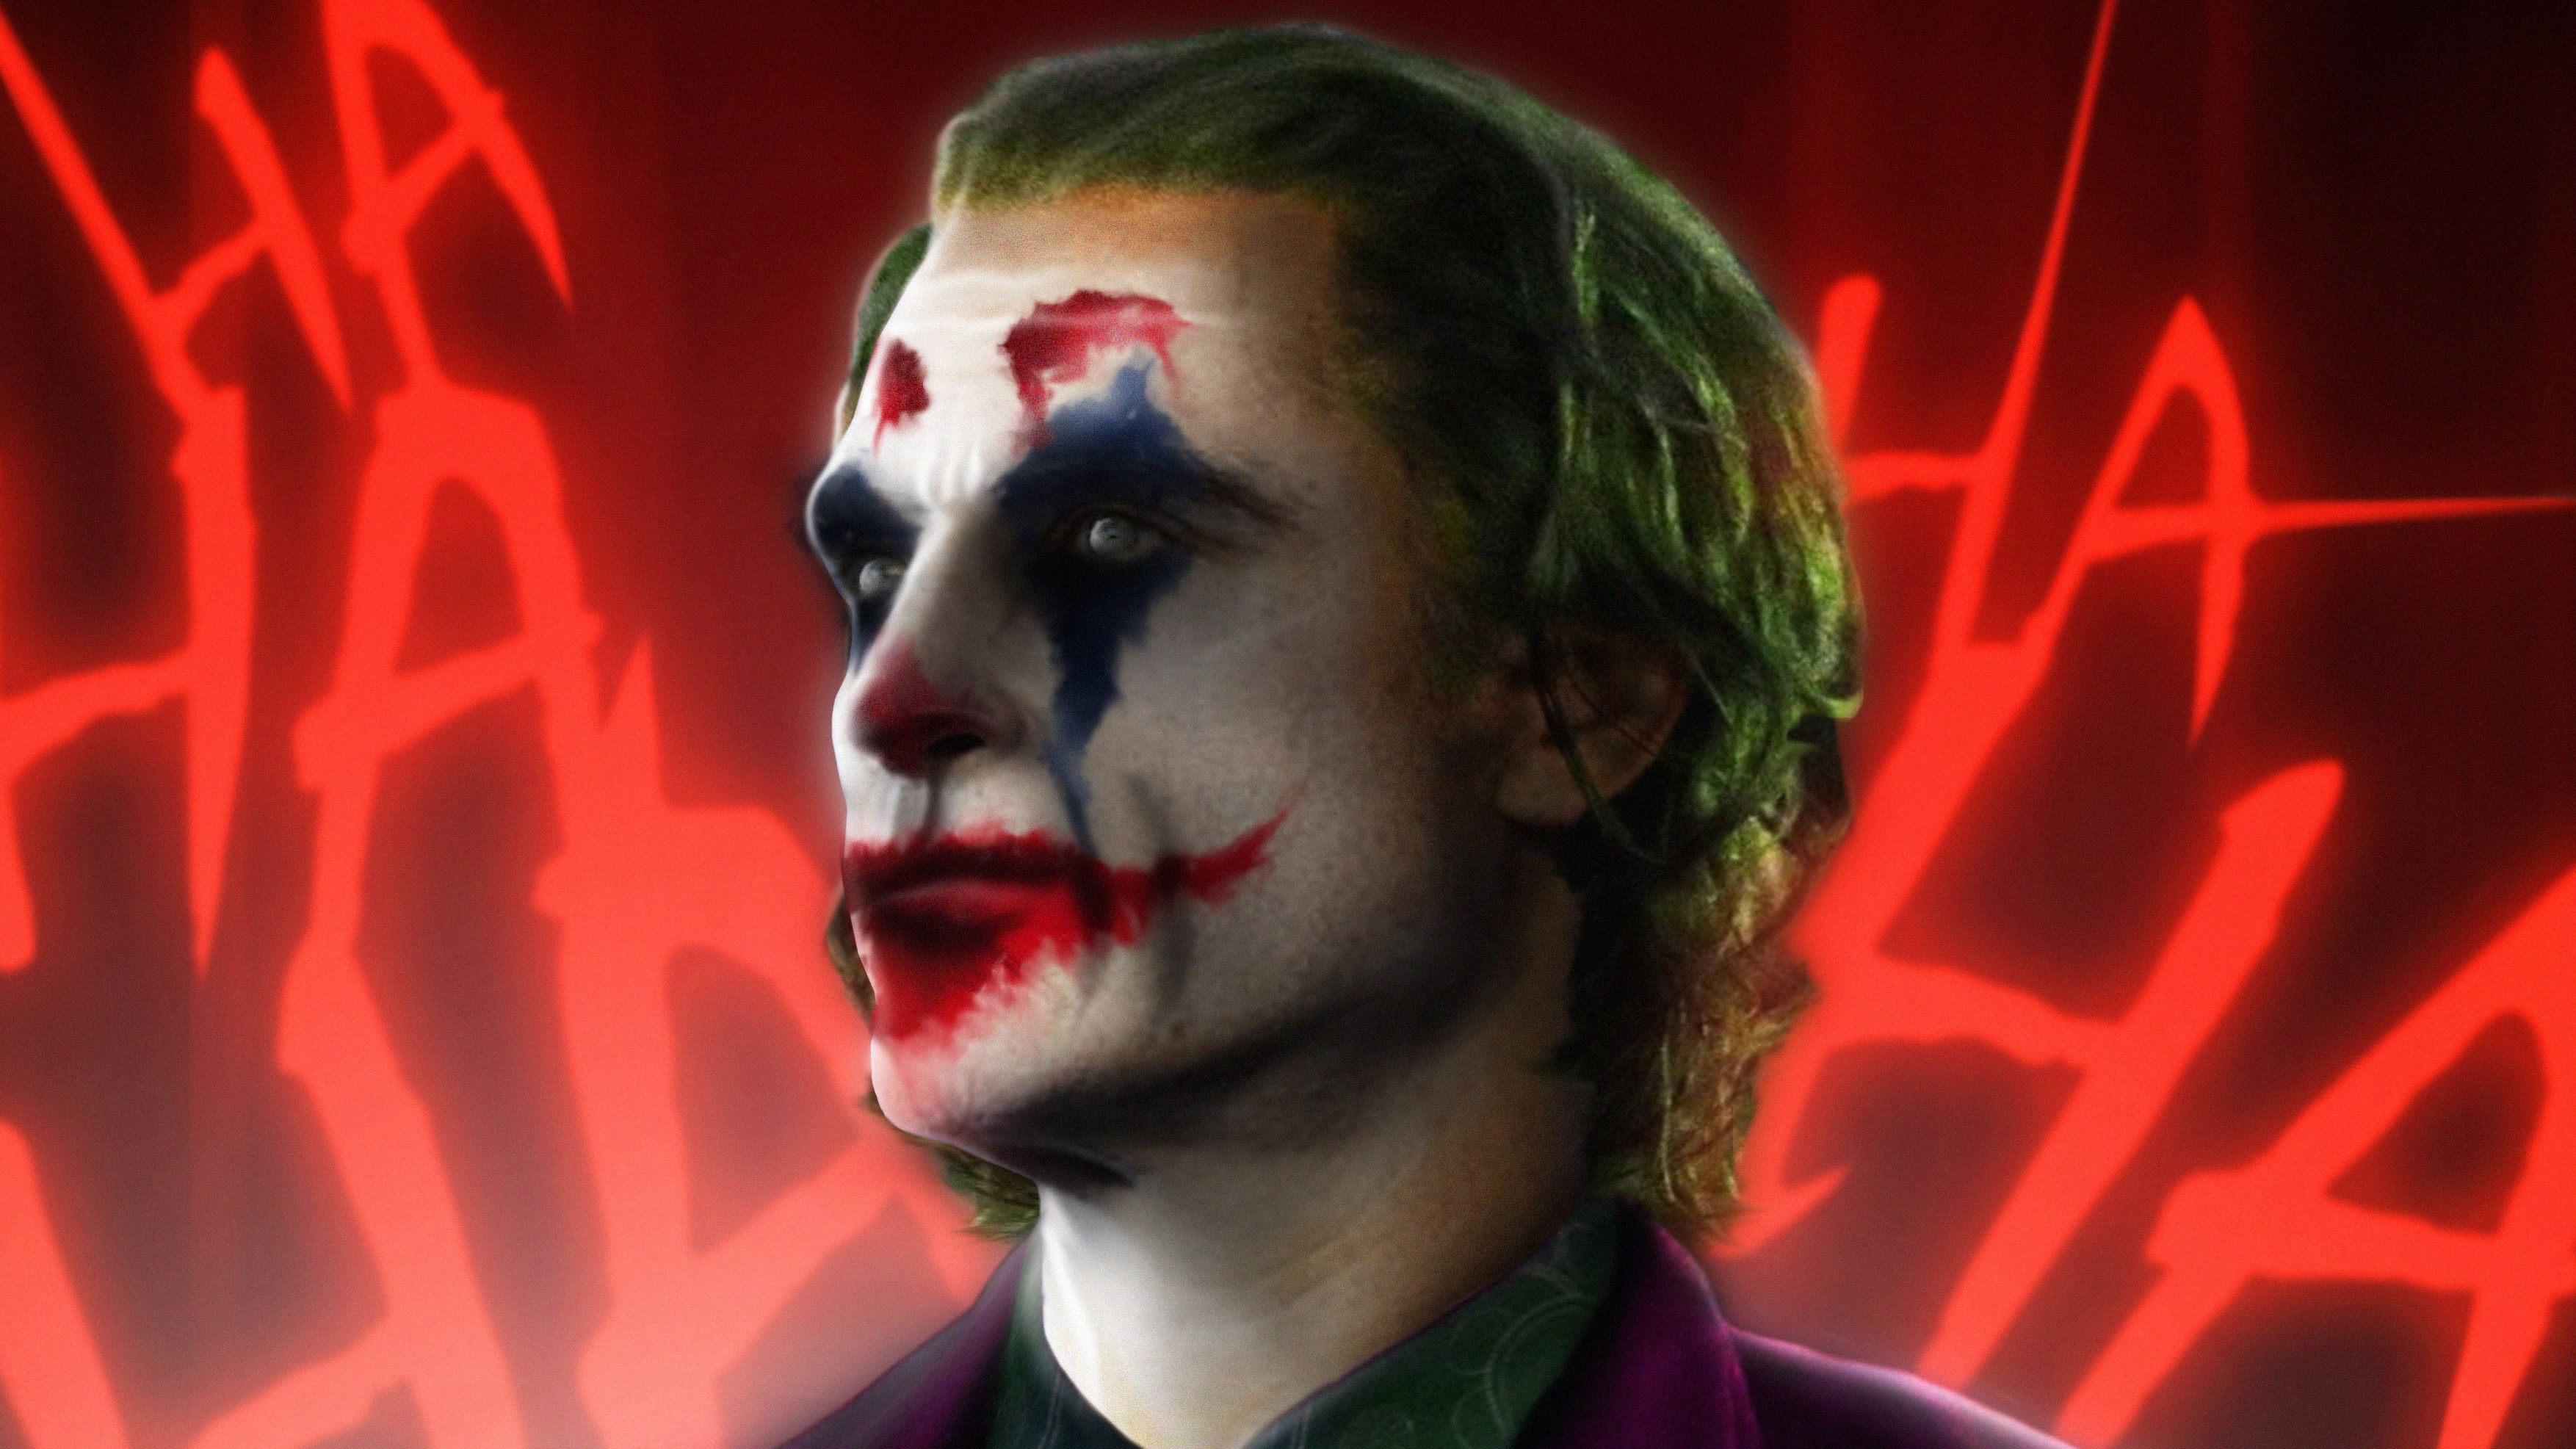 2880x1800 Joker Movie Joaquin Phoenix Macbook Pro Retina HD 4k